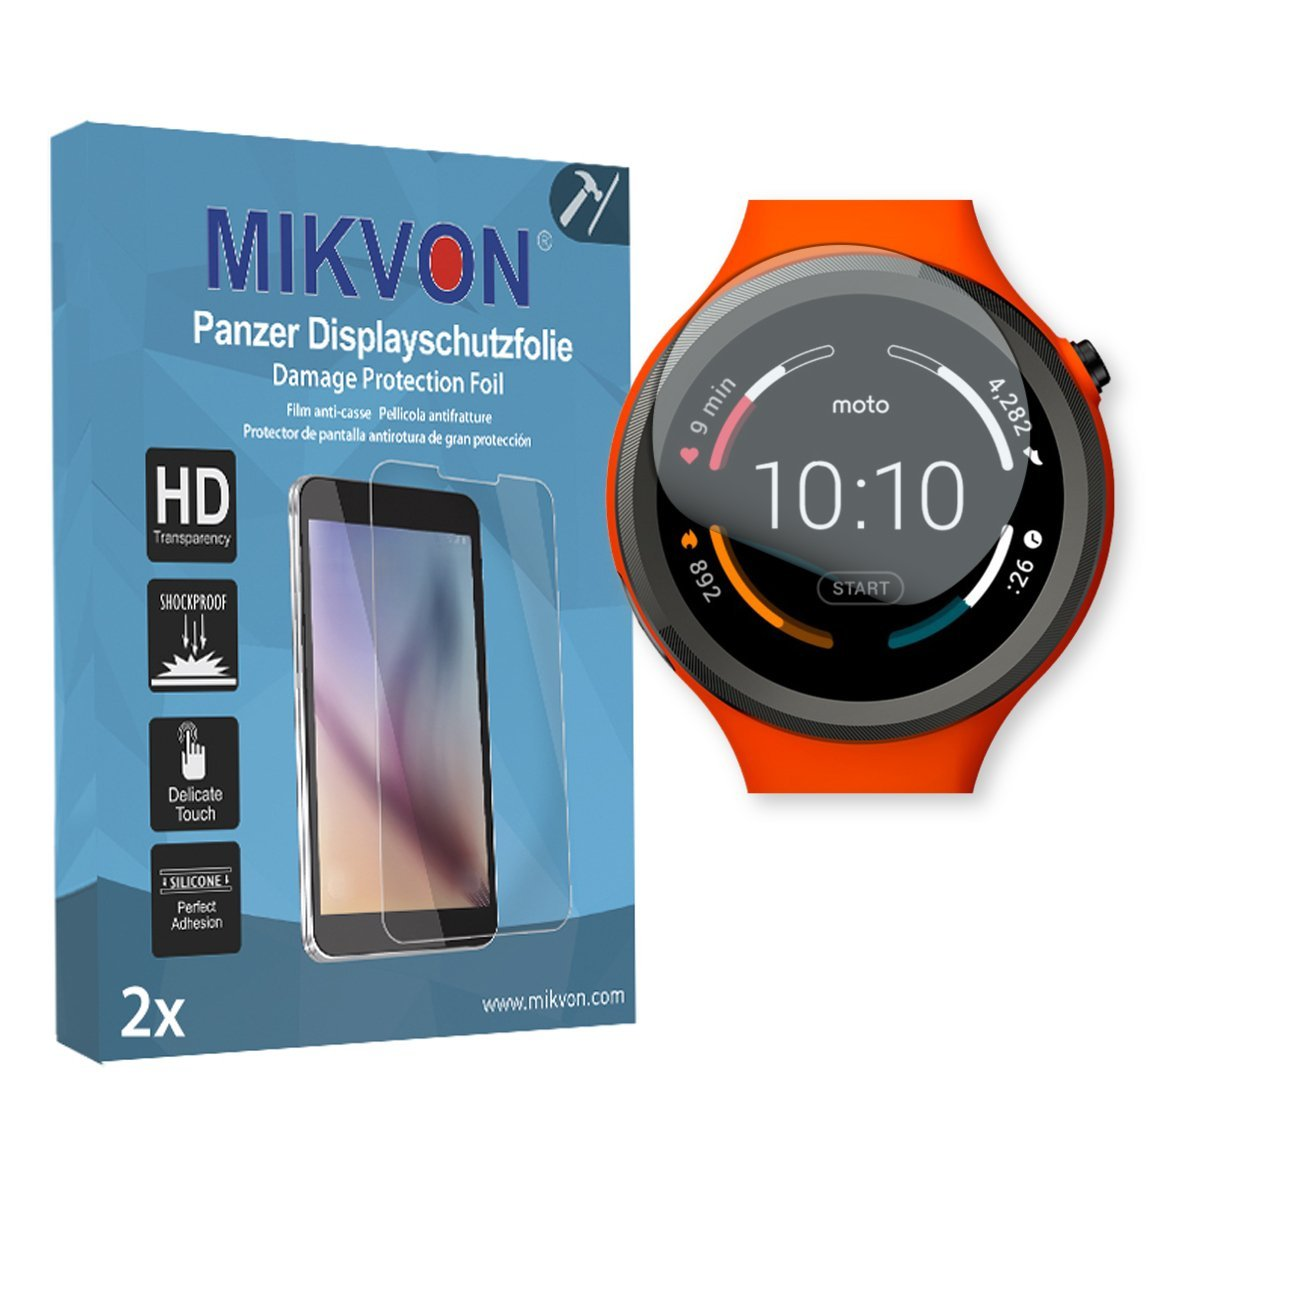 2x Mikvon Armor Screen Protector for Motorola Moto 360 Sport Smartwatch screen fracture protection film - Retail Package with accessories (intentionally smaller than the display due to its curved surf